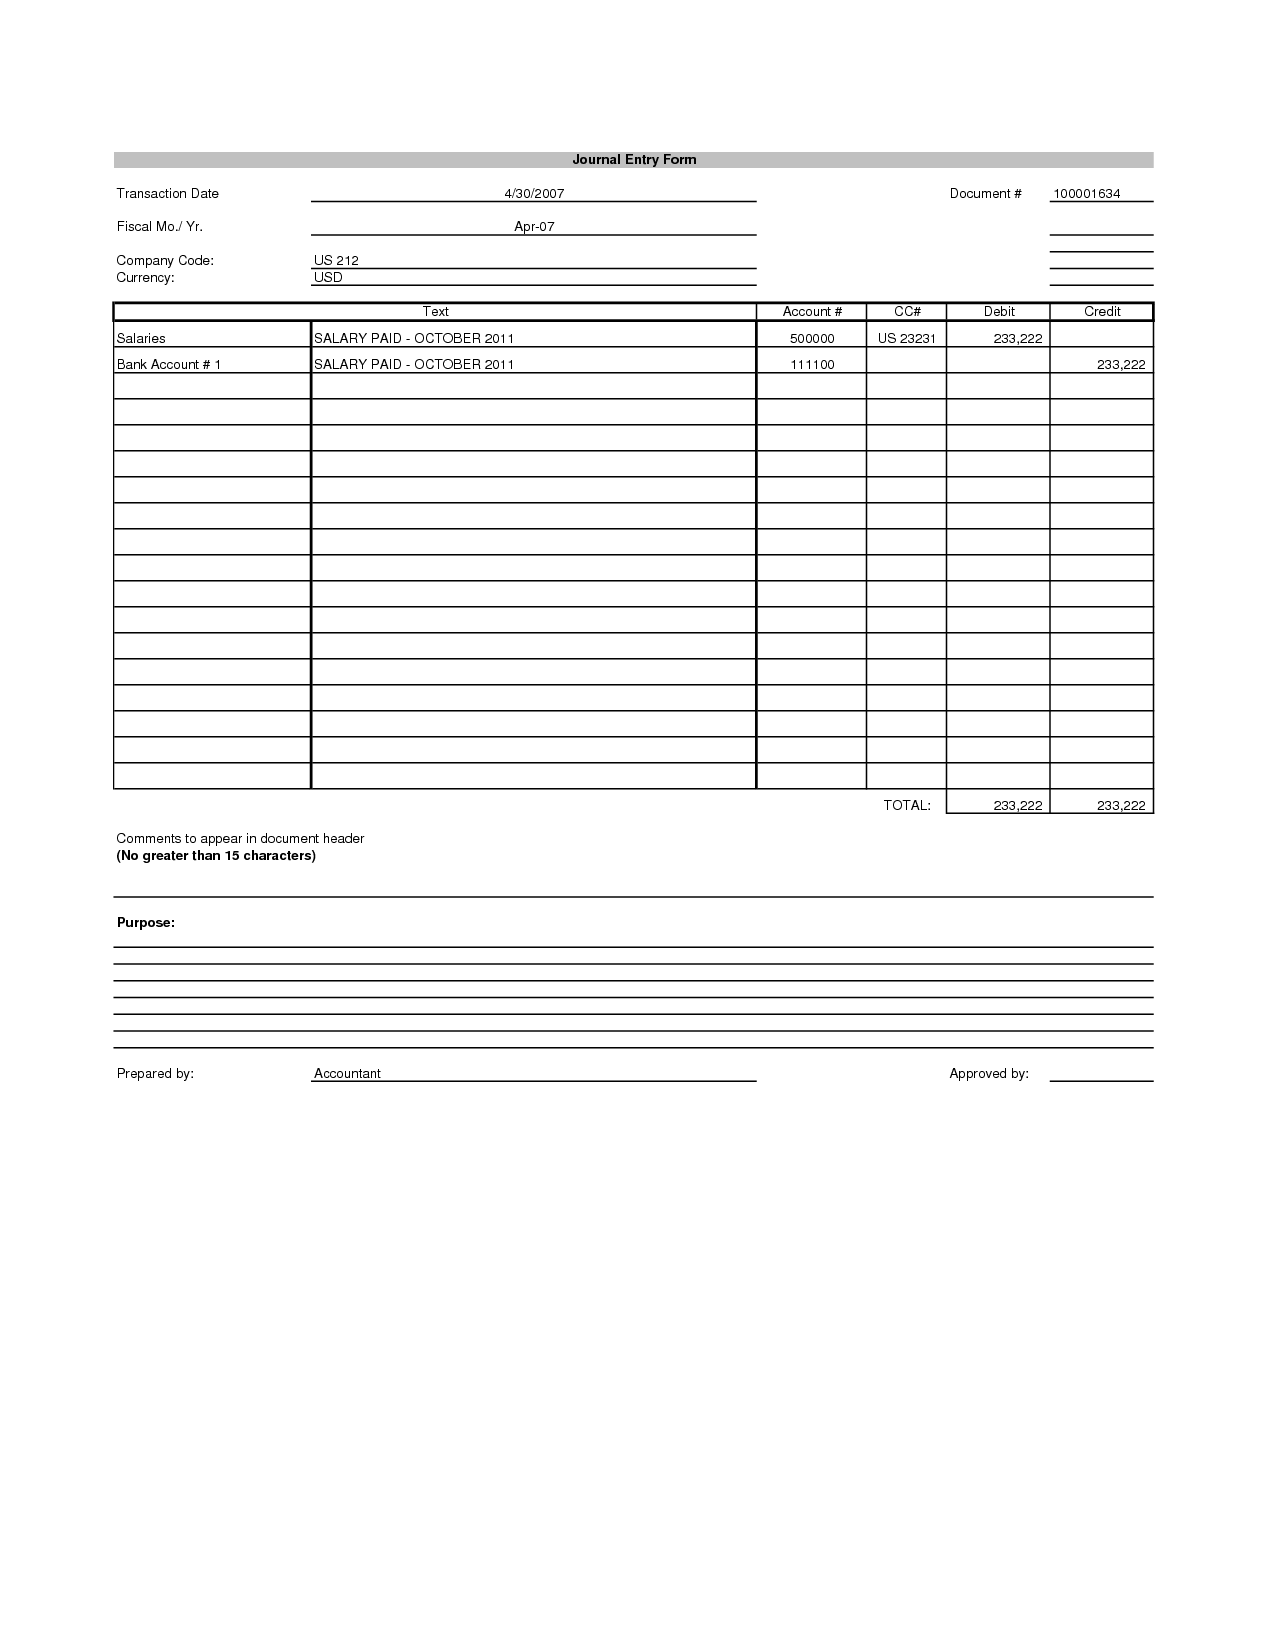 Accounting Journal Entry Template Excel With Images